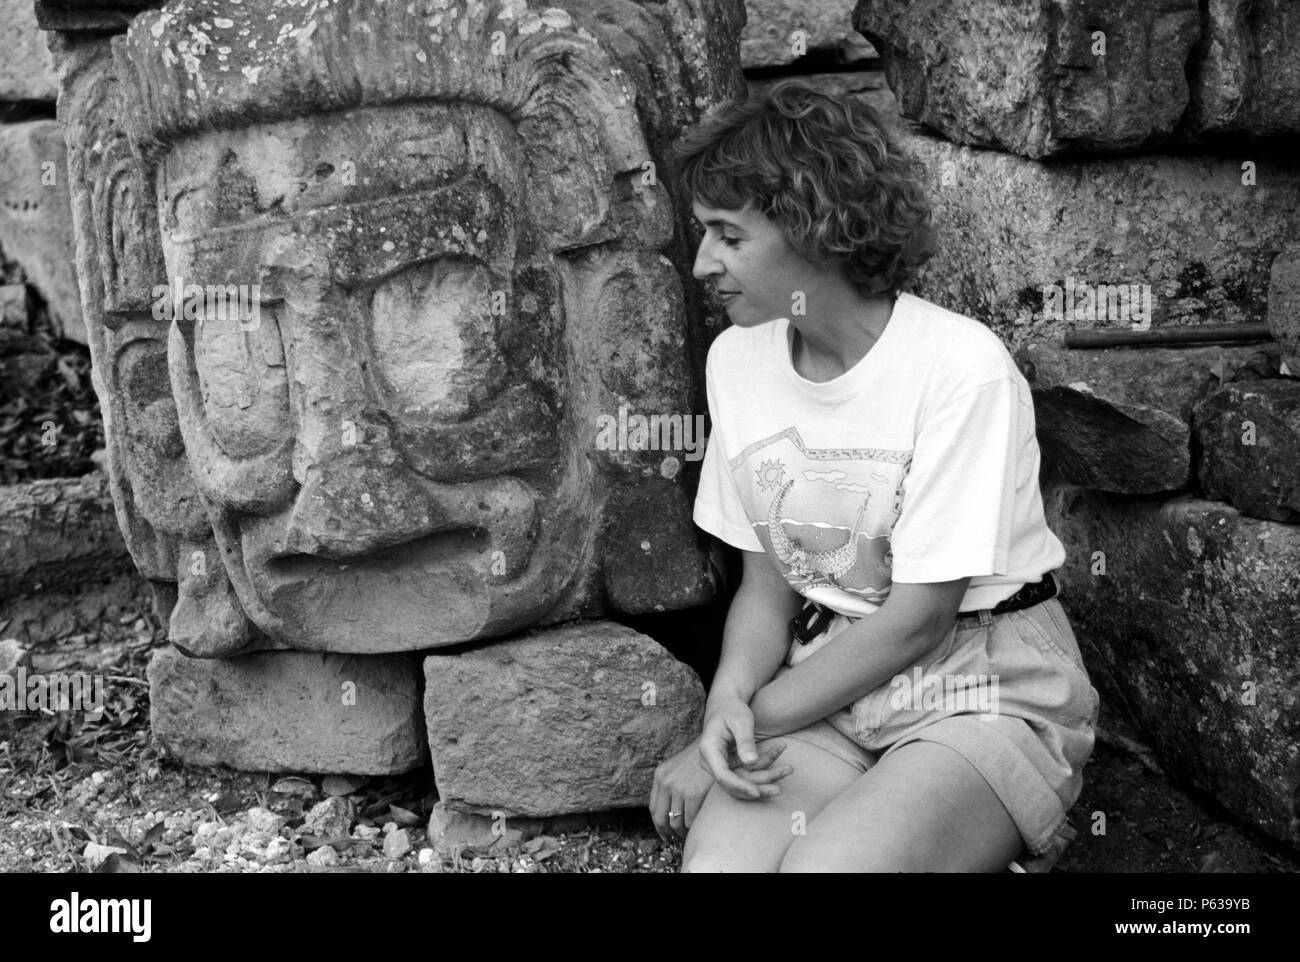 TOURIST with ancient MAYAN stone head, probably a god or ruler, found at the COPAN RUINS - HONDURAS - Stock Image